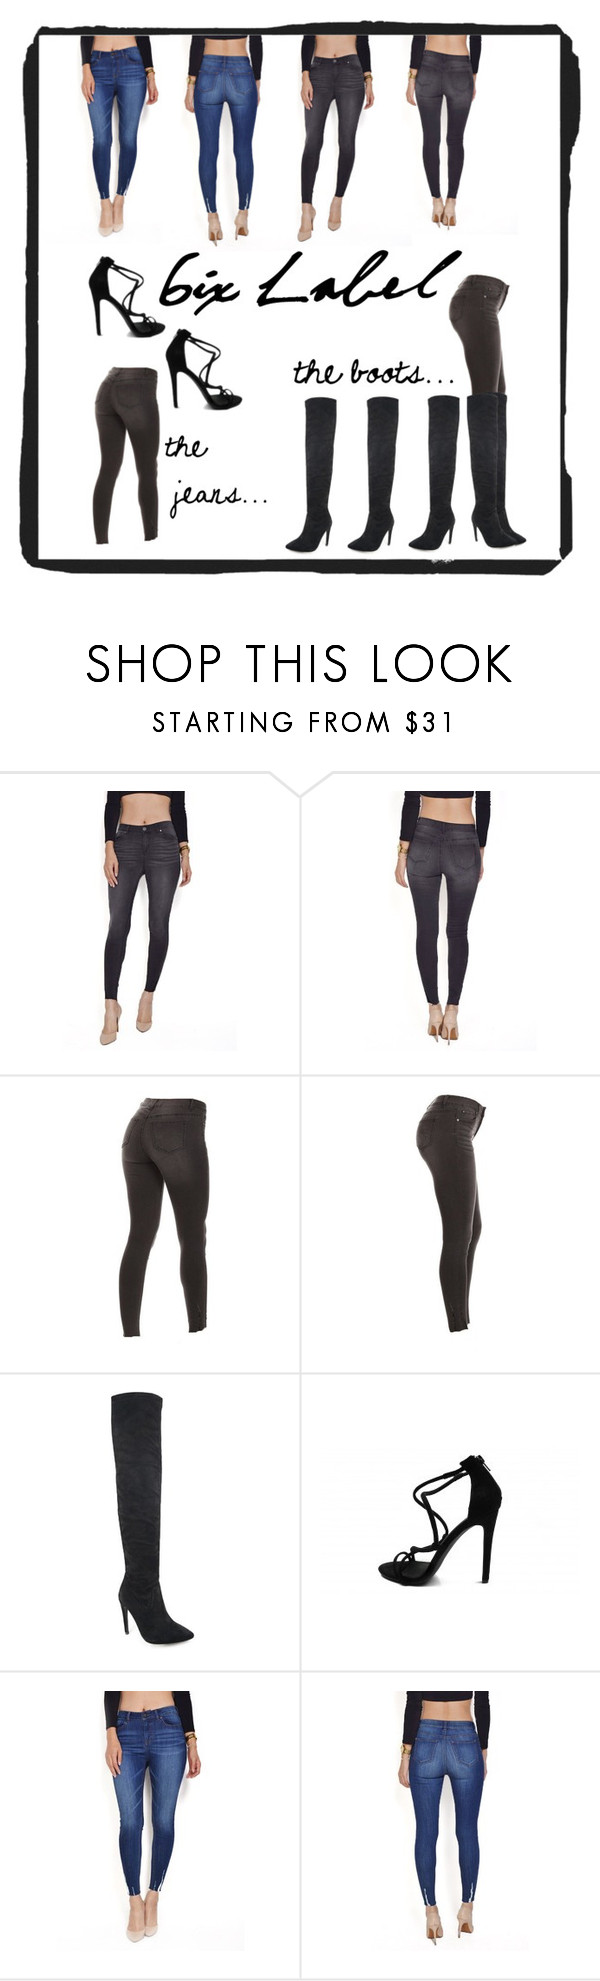 """""""@sixlabel simple jeans"""" by beanpod ❤ liked on Polyvore featuring 6ixlabel"""